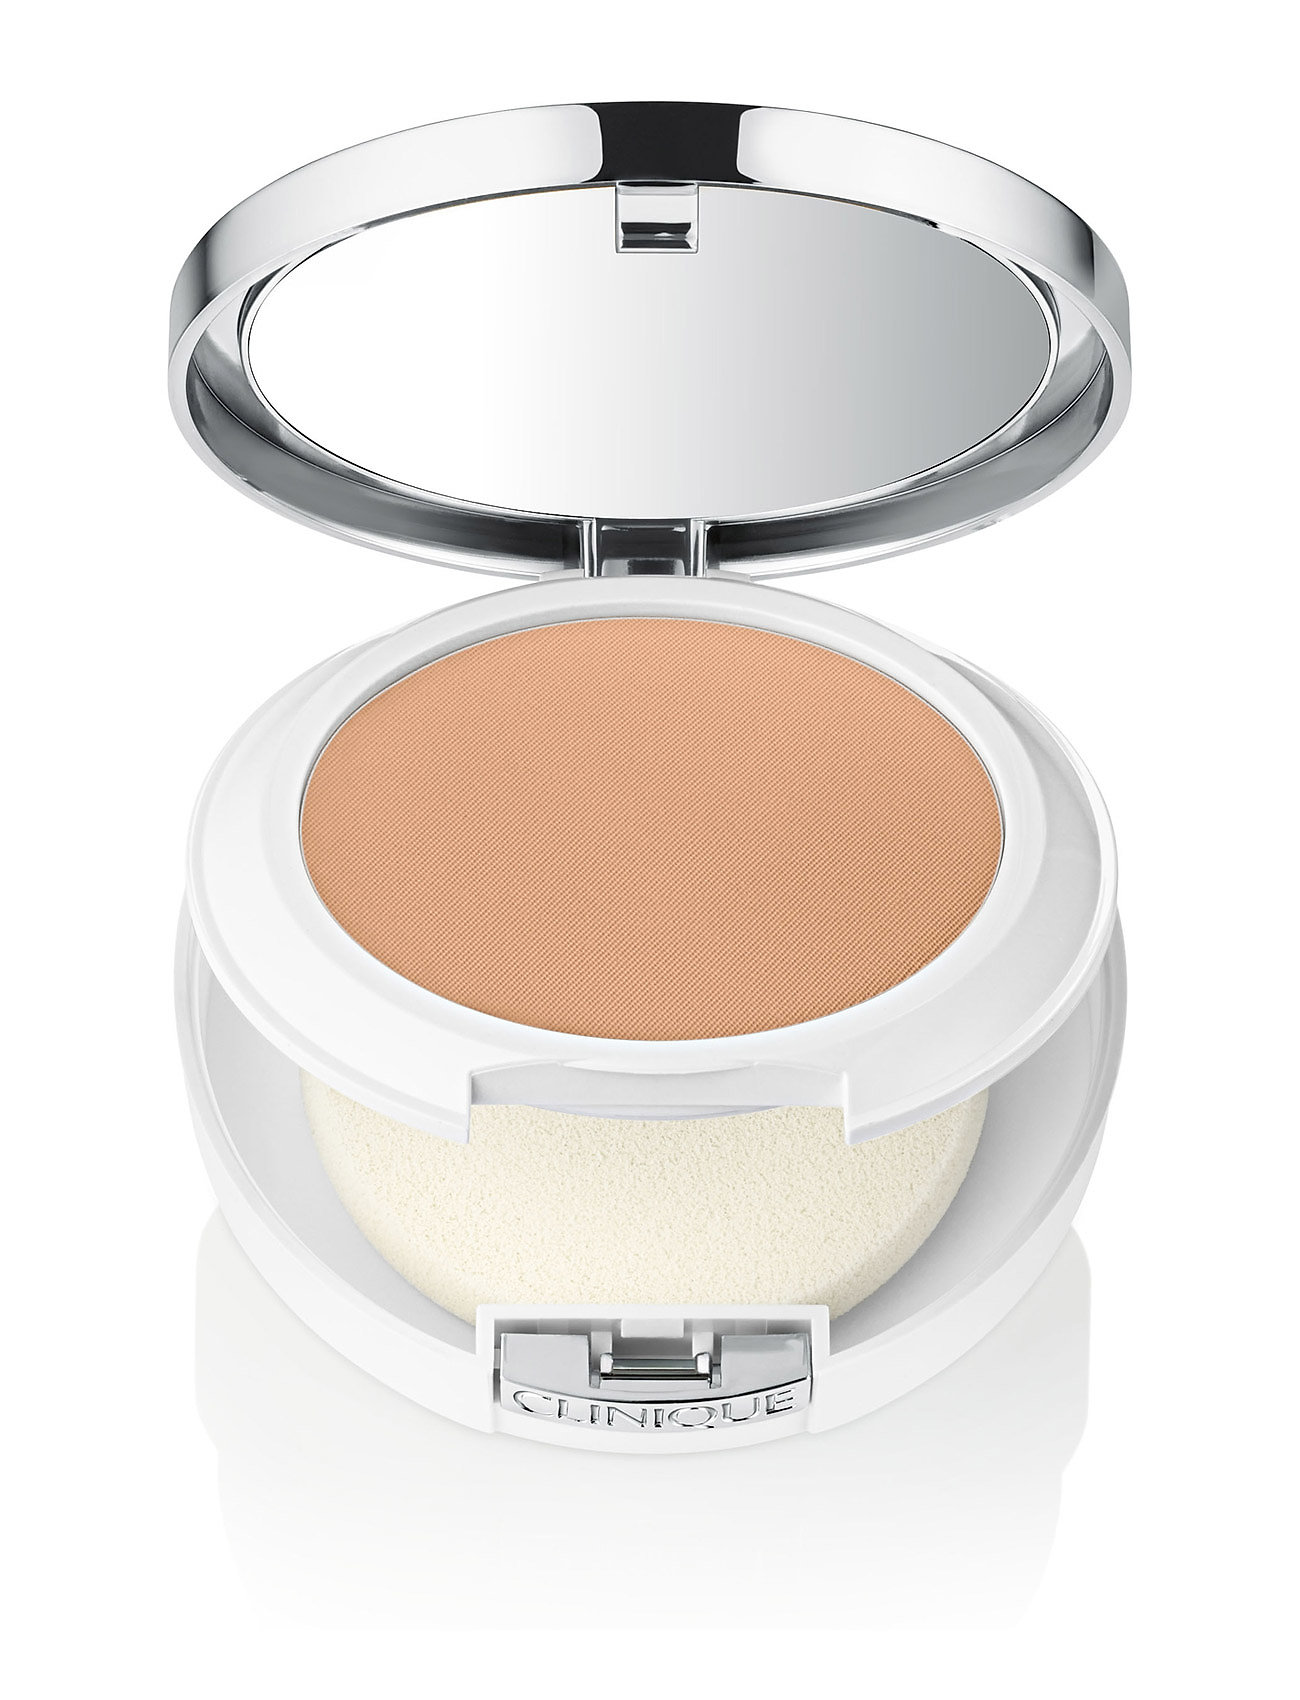 Image of Beyond Perfecting Powder Makeup + Concealer, Creamwhip Pudder Makeup Clinique (3041219635)